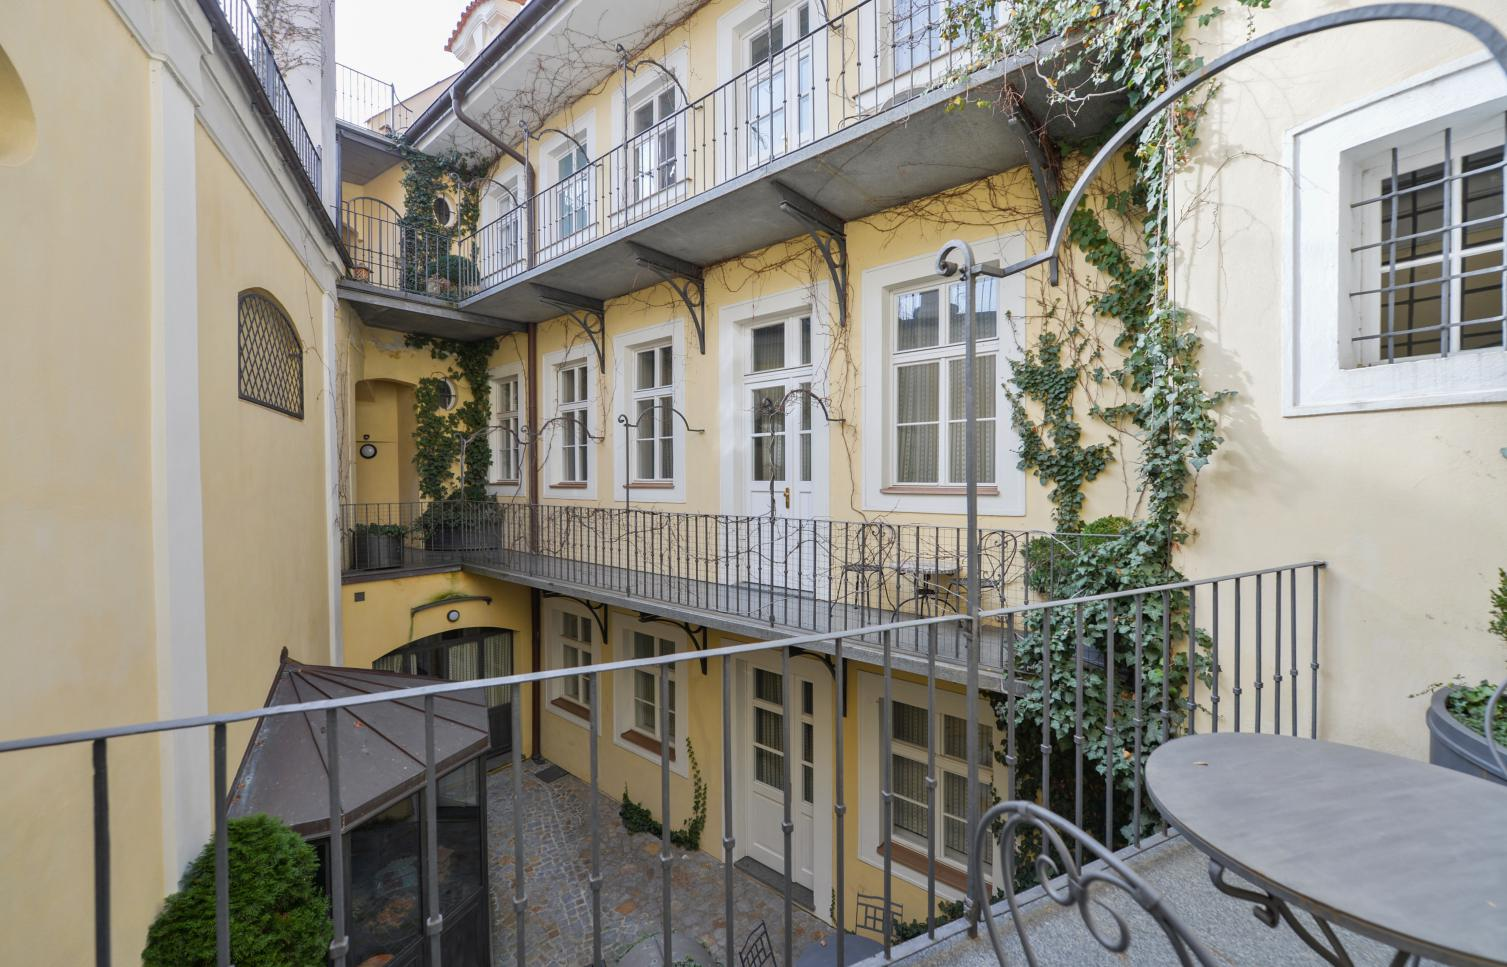 APARTMENT FOR RENT, Str. Vlašská, Prague 1 - Malá Strana